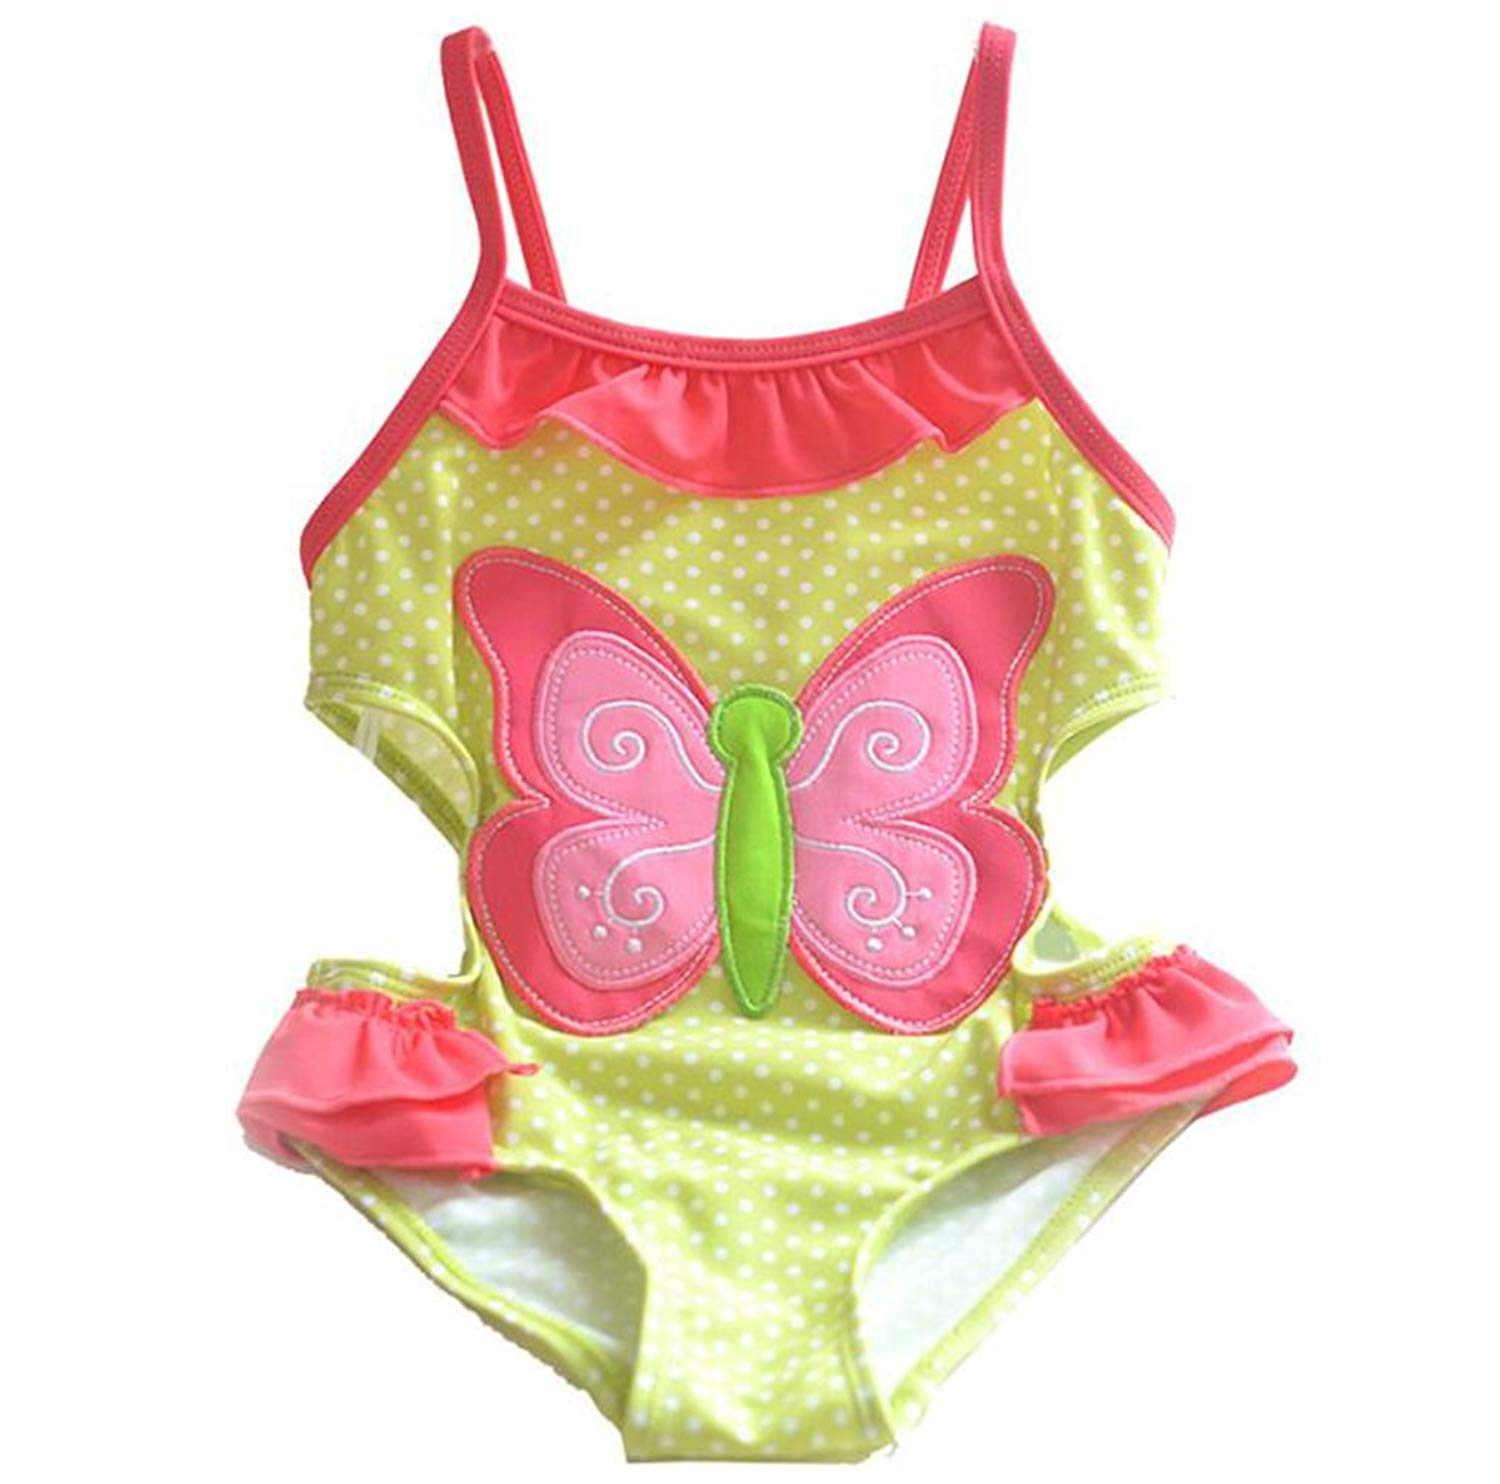 iEFiEL Baby Girls Toddlers Vigour Polka Dots One-Piece Swimwear Beach Holiday Bowknot Bathing Suit